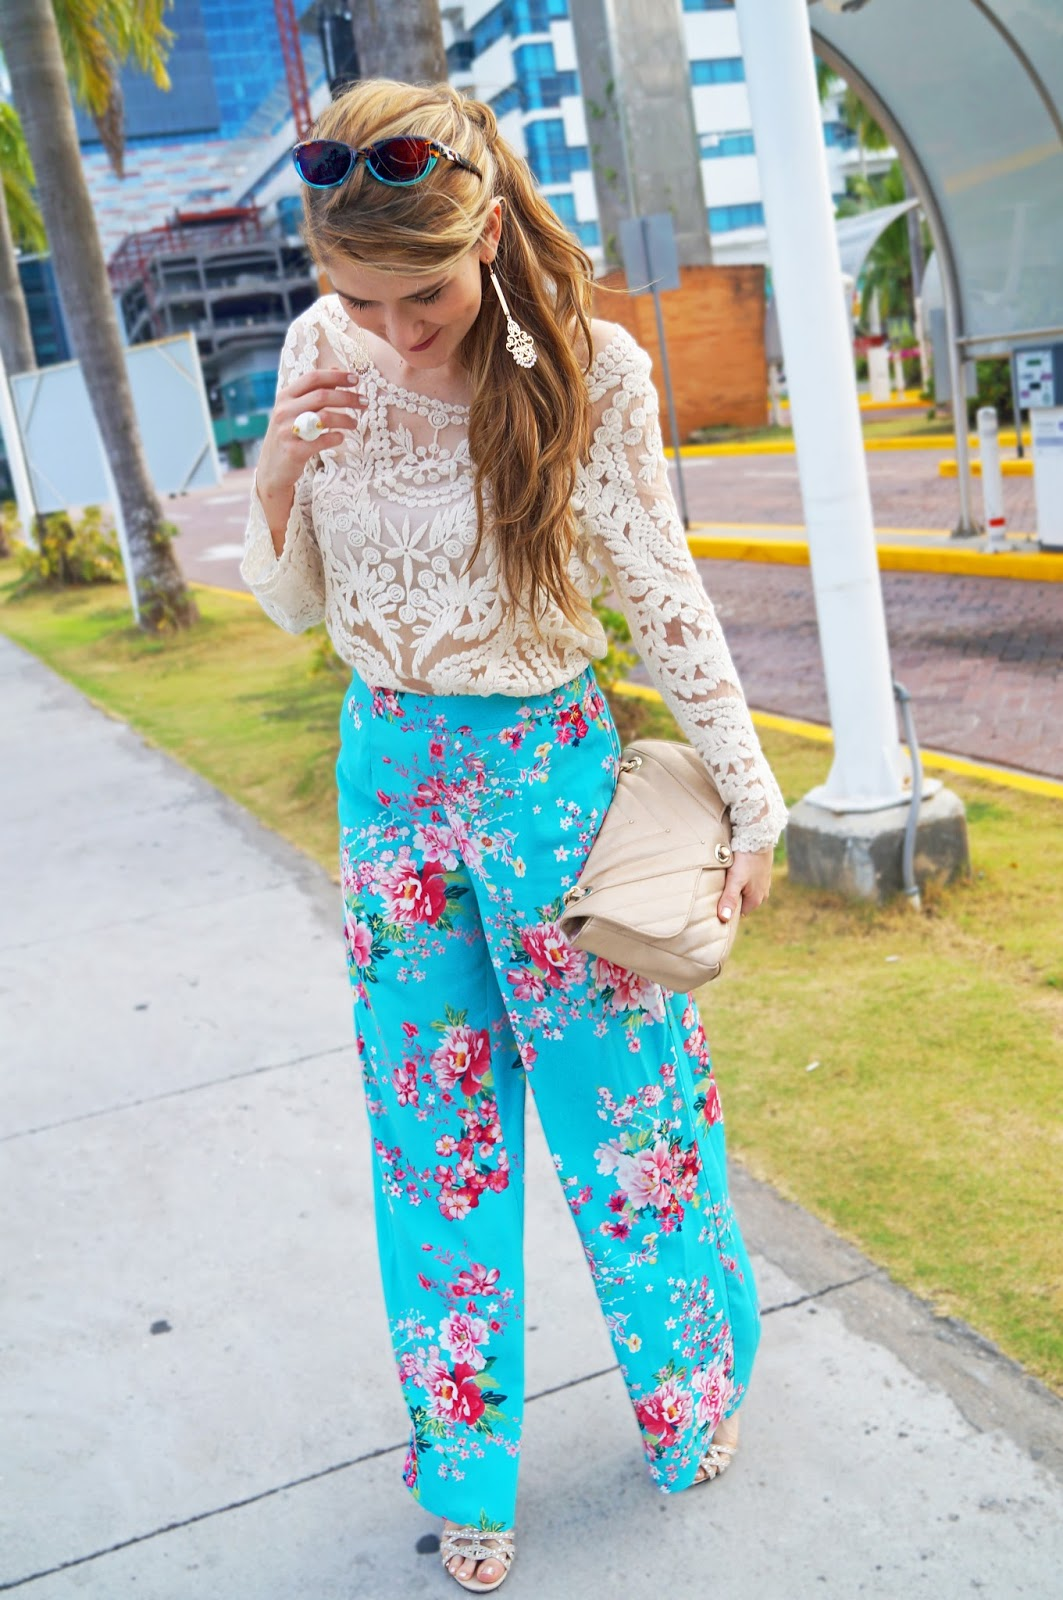 Pair different floral prints for Spring!